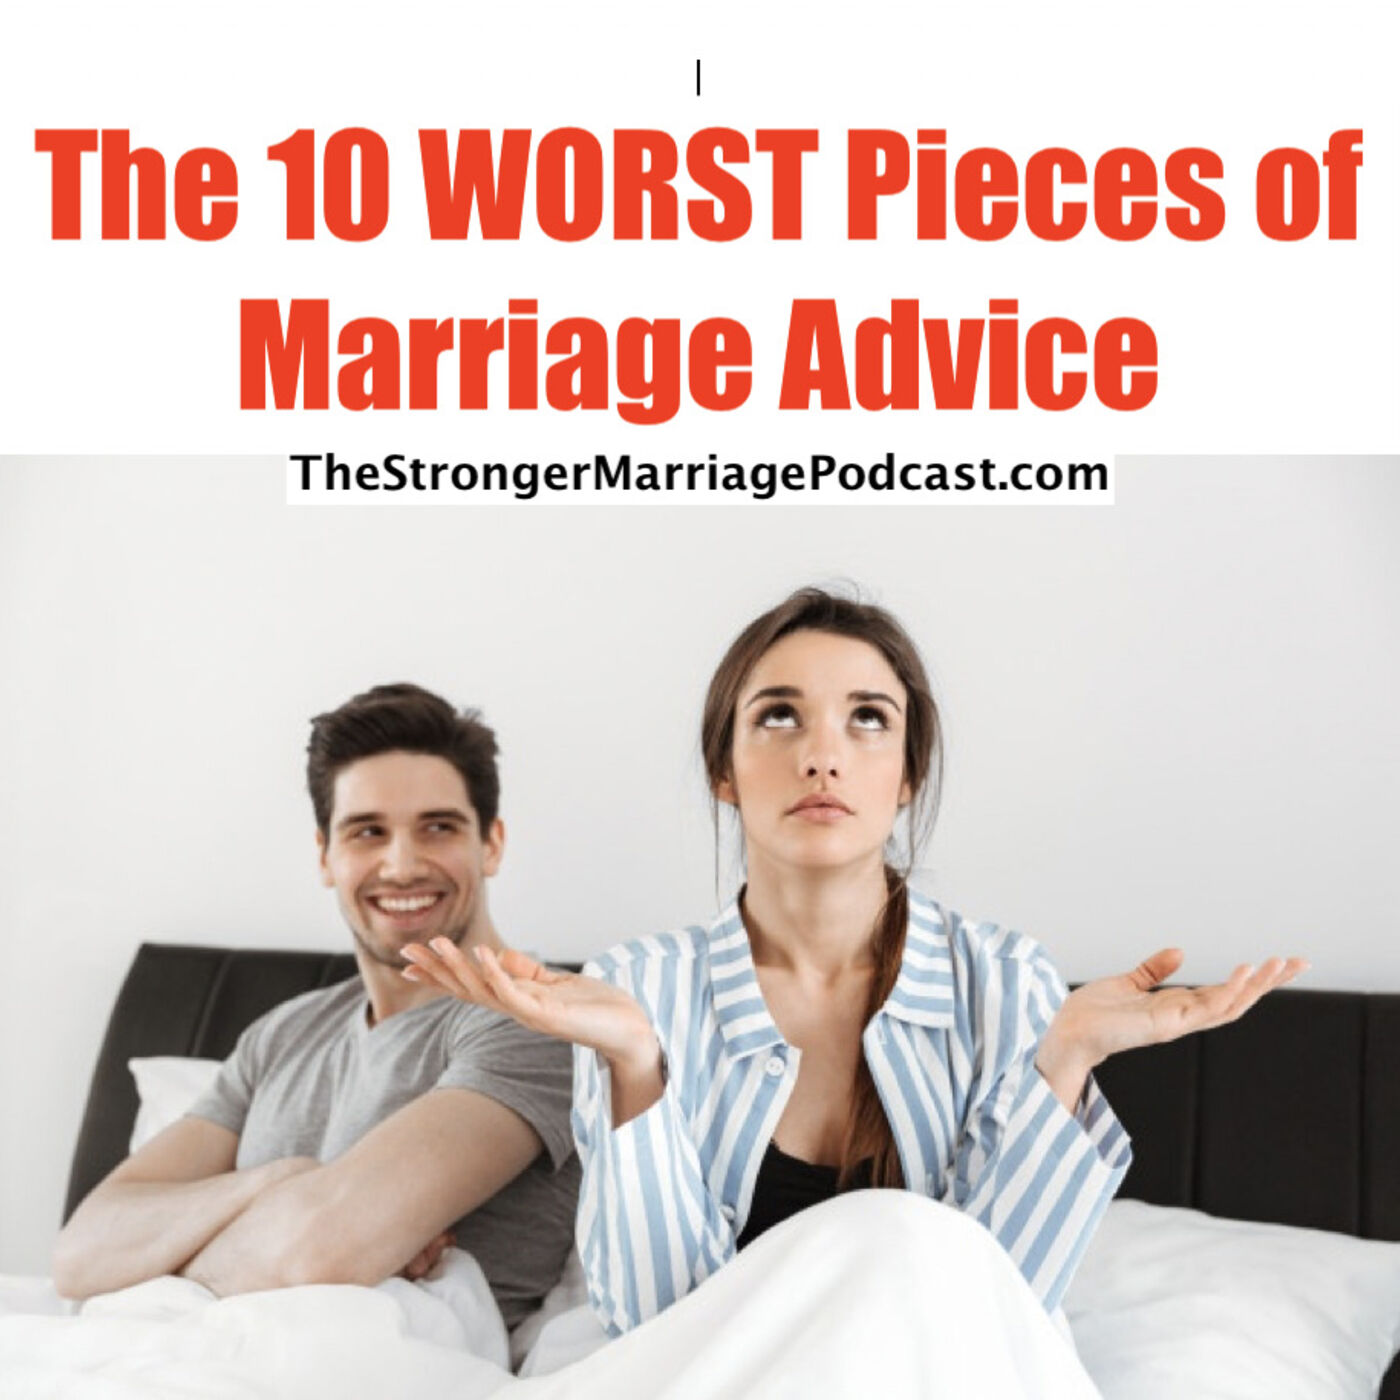 The 10 WORST Pieces of Marriage Advice